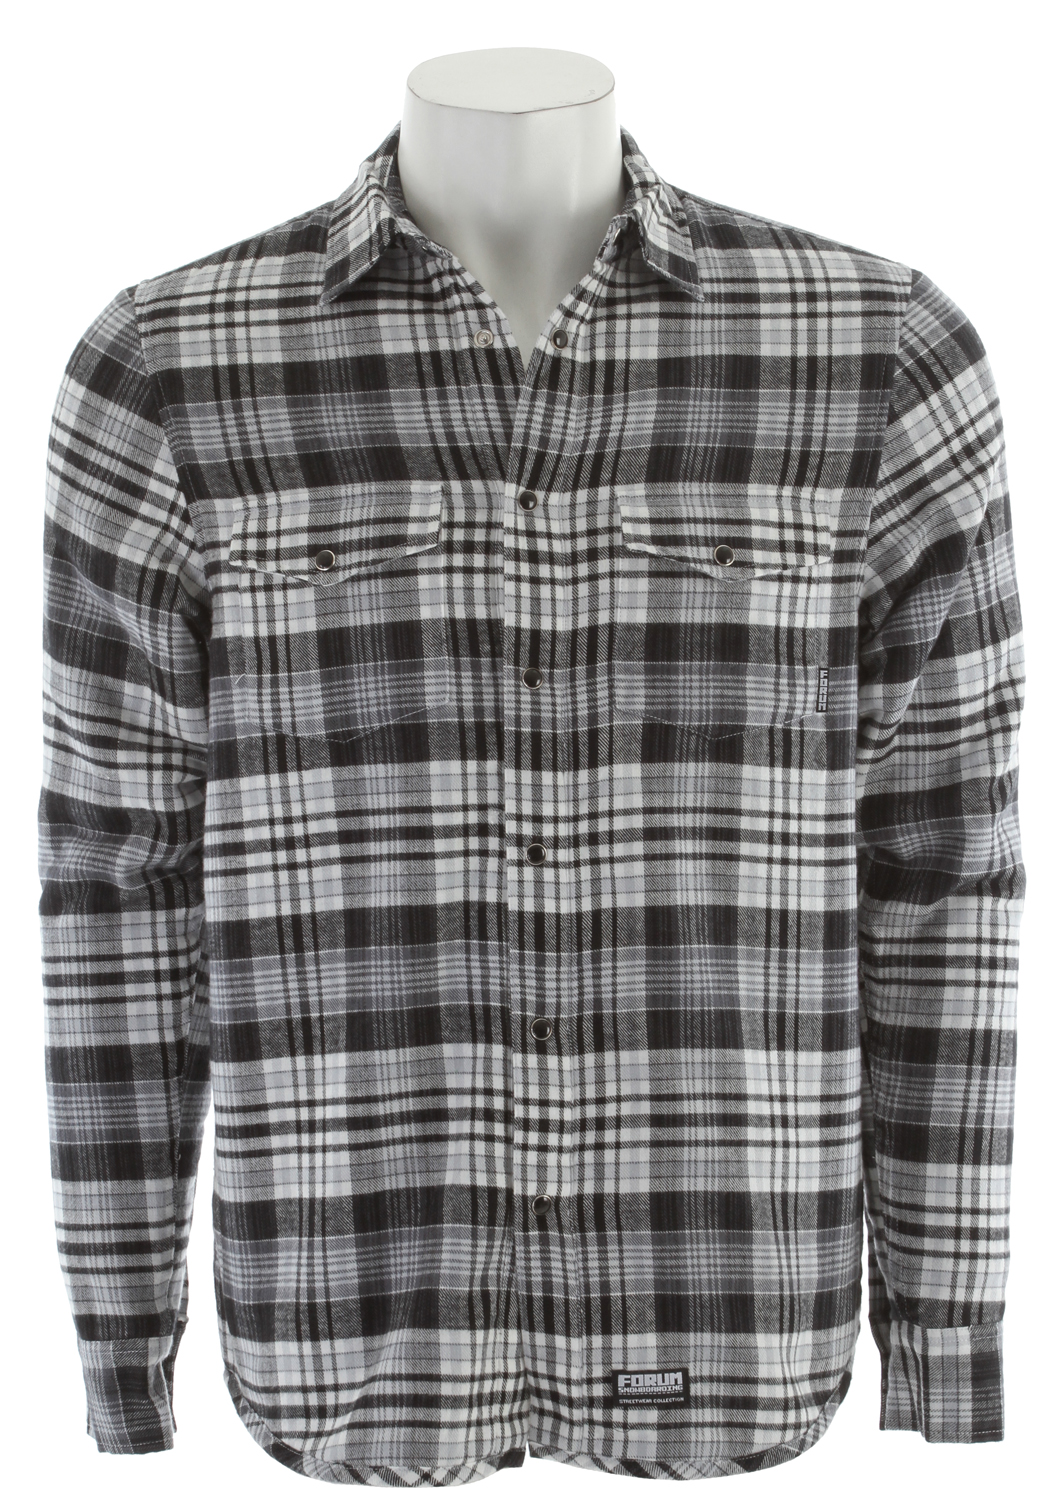 When you need to stay warm no matter the season, you can count on Forum PJ Insulated Flannel! Made from 100% cotton and lined with fleece, this shirt will keep you comfy and toasty to the max! With a regular fit, you don't have to worry about it being too tight or having lots of excess material! Great for every day, casual wear or even for travel. Anytime you need to stay comfortable and keep warm, the Forum PJ Flannel will be there for you!Key Features of the Forum PJ Hoodie:  Flannel   100% cotton  Fully lined with sherpa fleece - $35.95